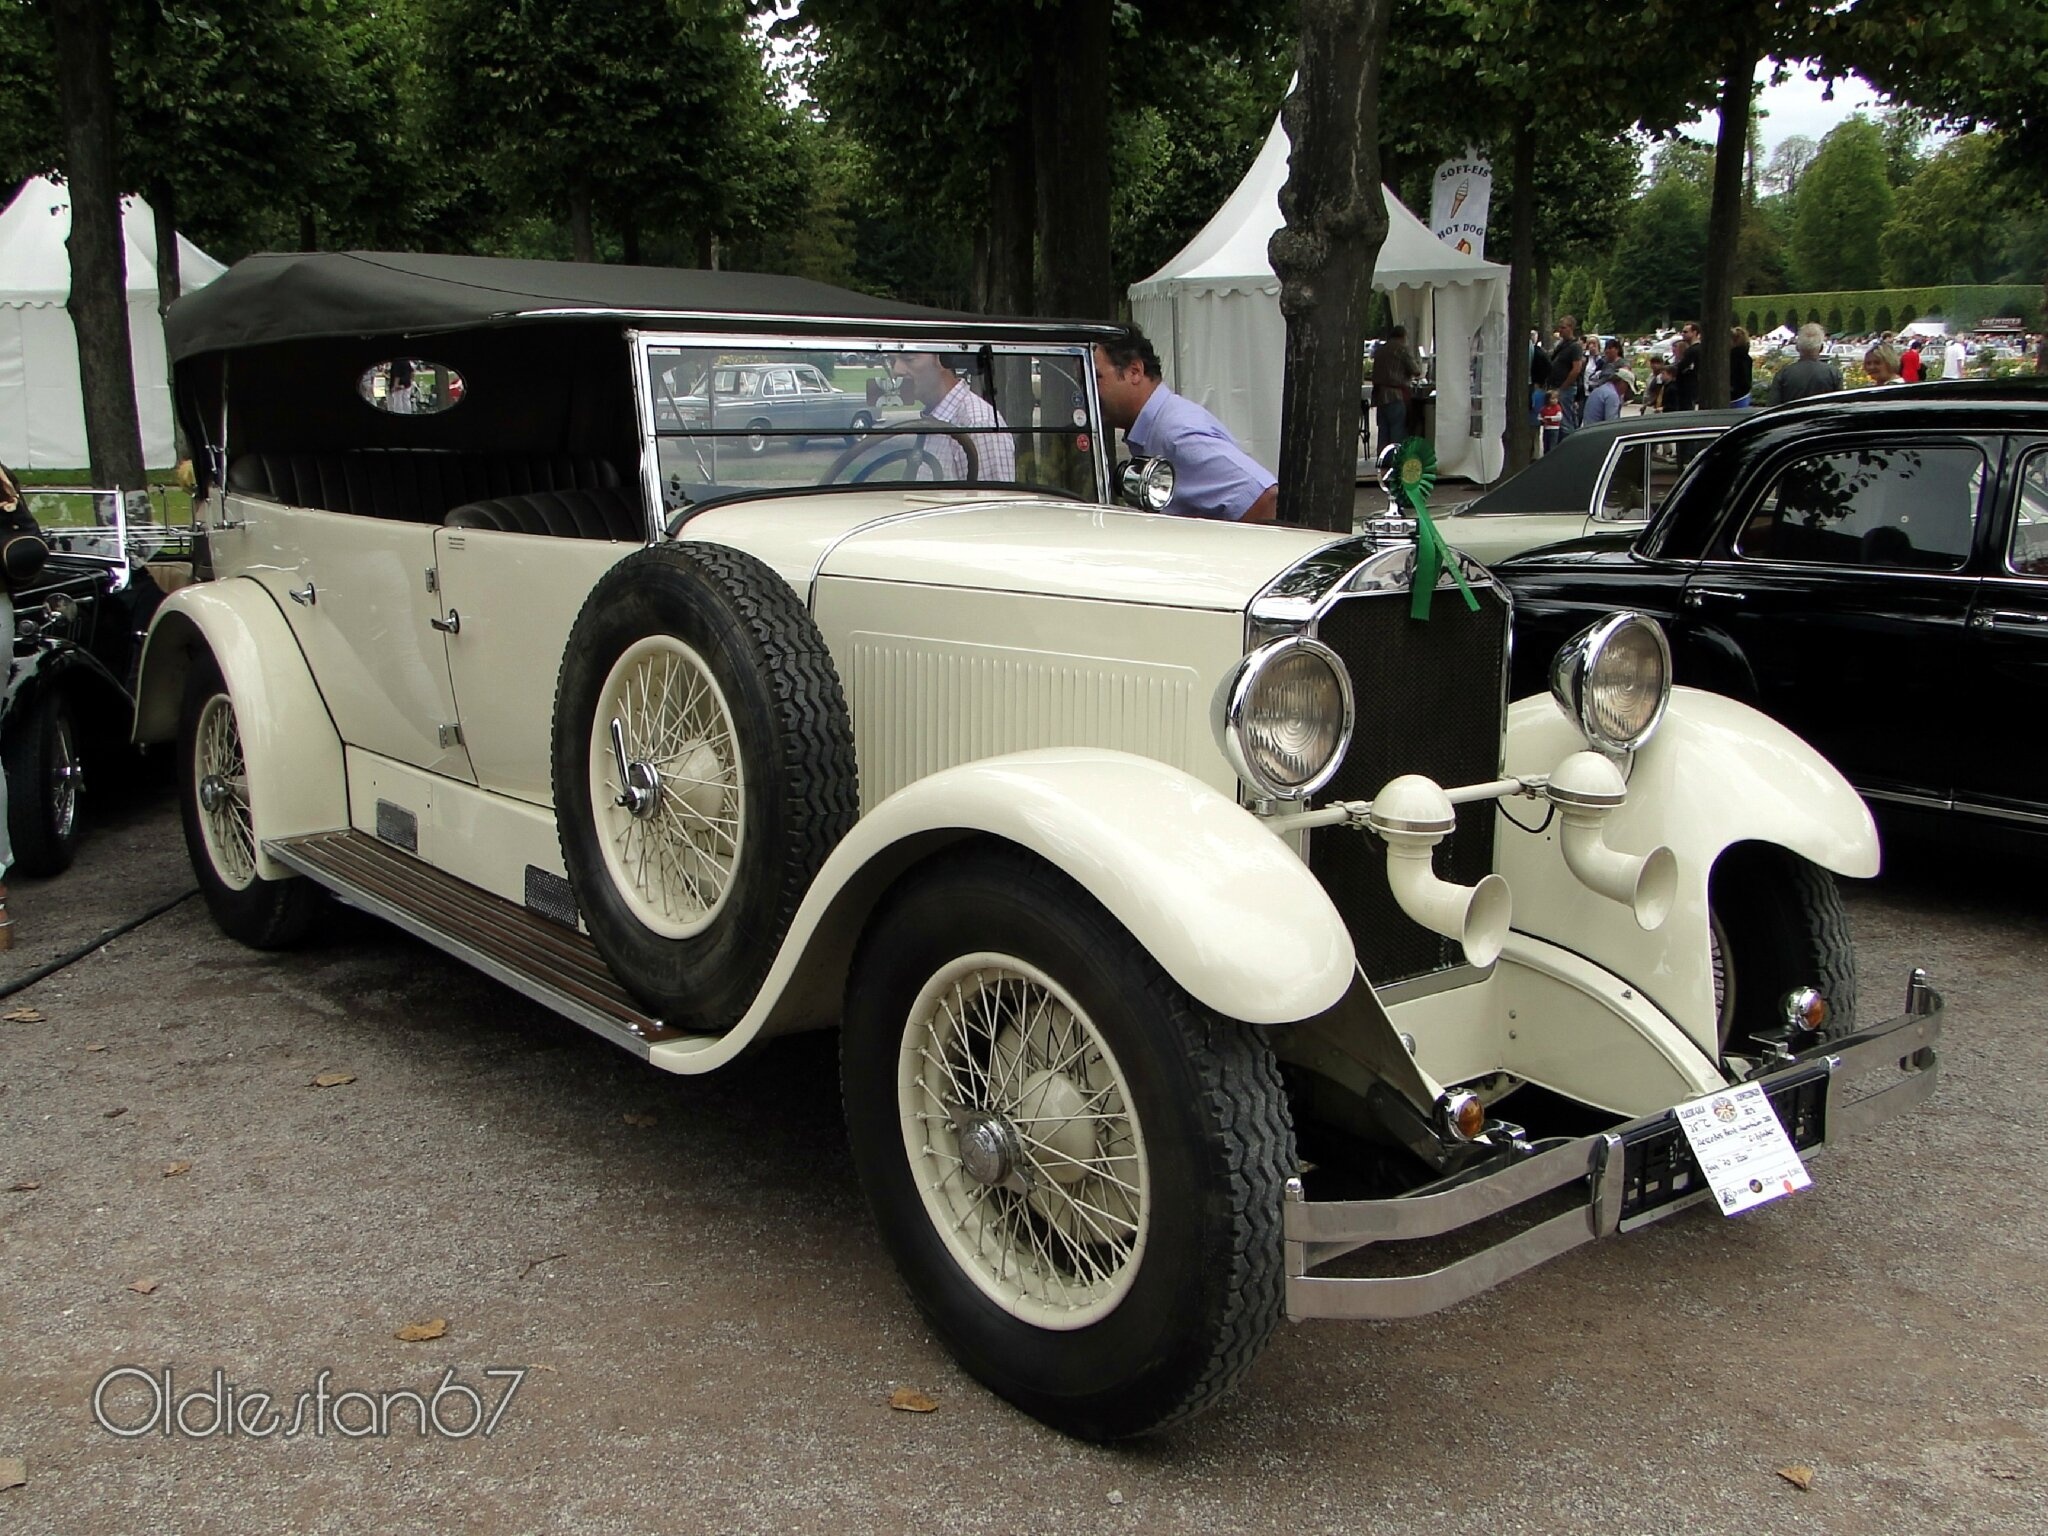 mercedes benz w10 mannheim 350 cabriolet 1929 oldiesfan67 mon blog auto. Black Bedroom Furniture Sets. Home Design Ideas